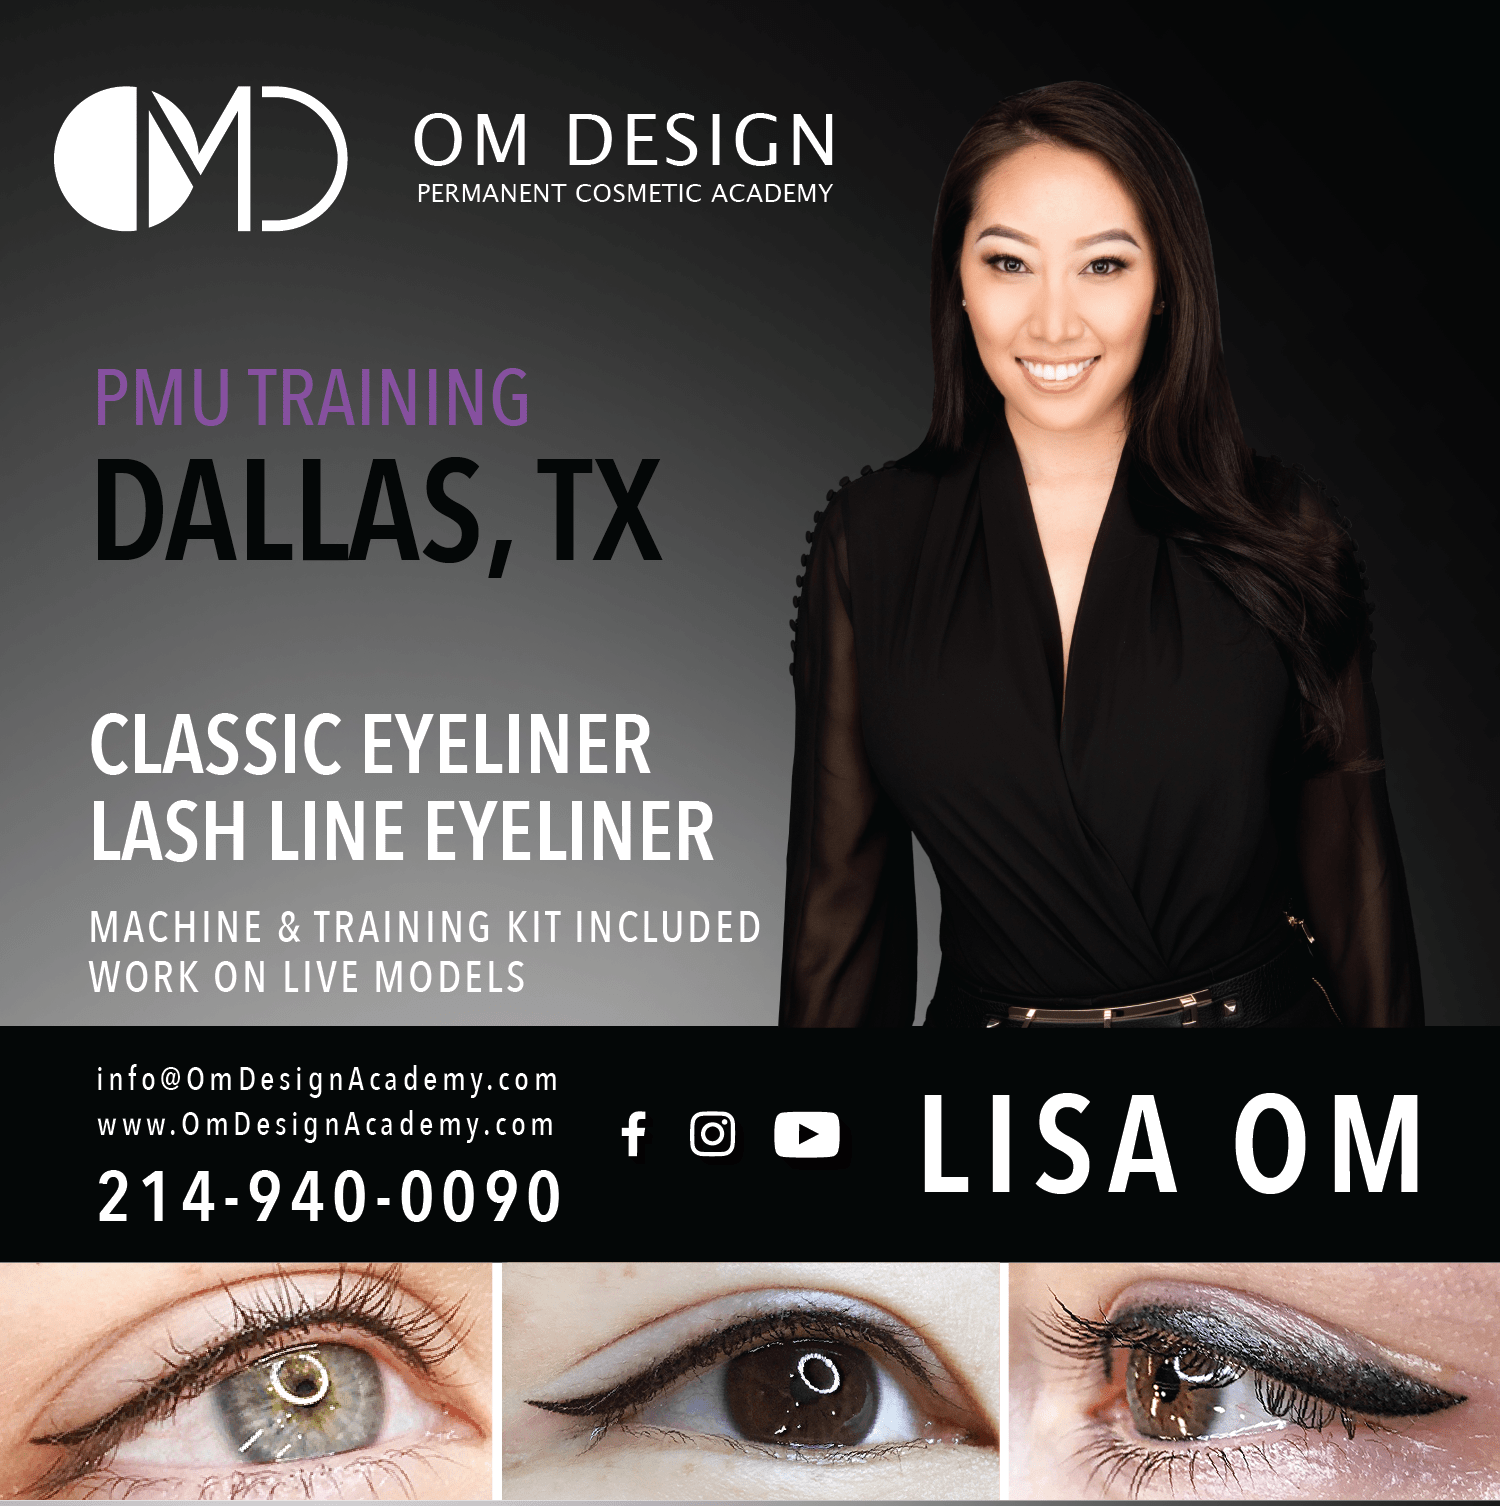 Day Dallas Pmu Eyeliner Training